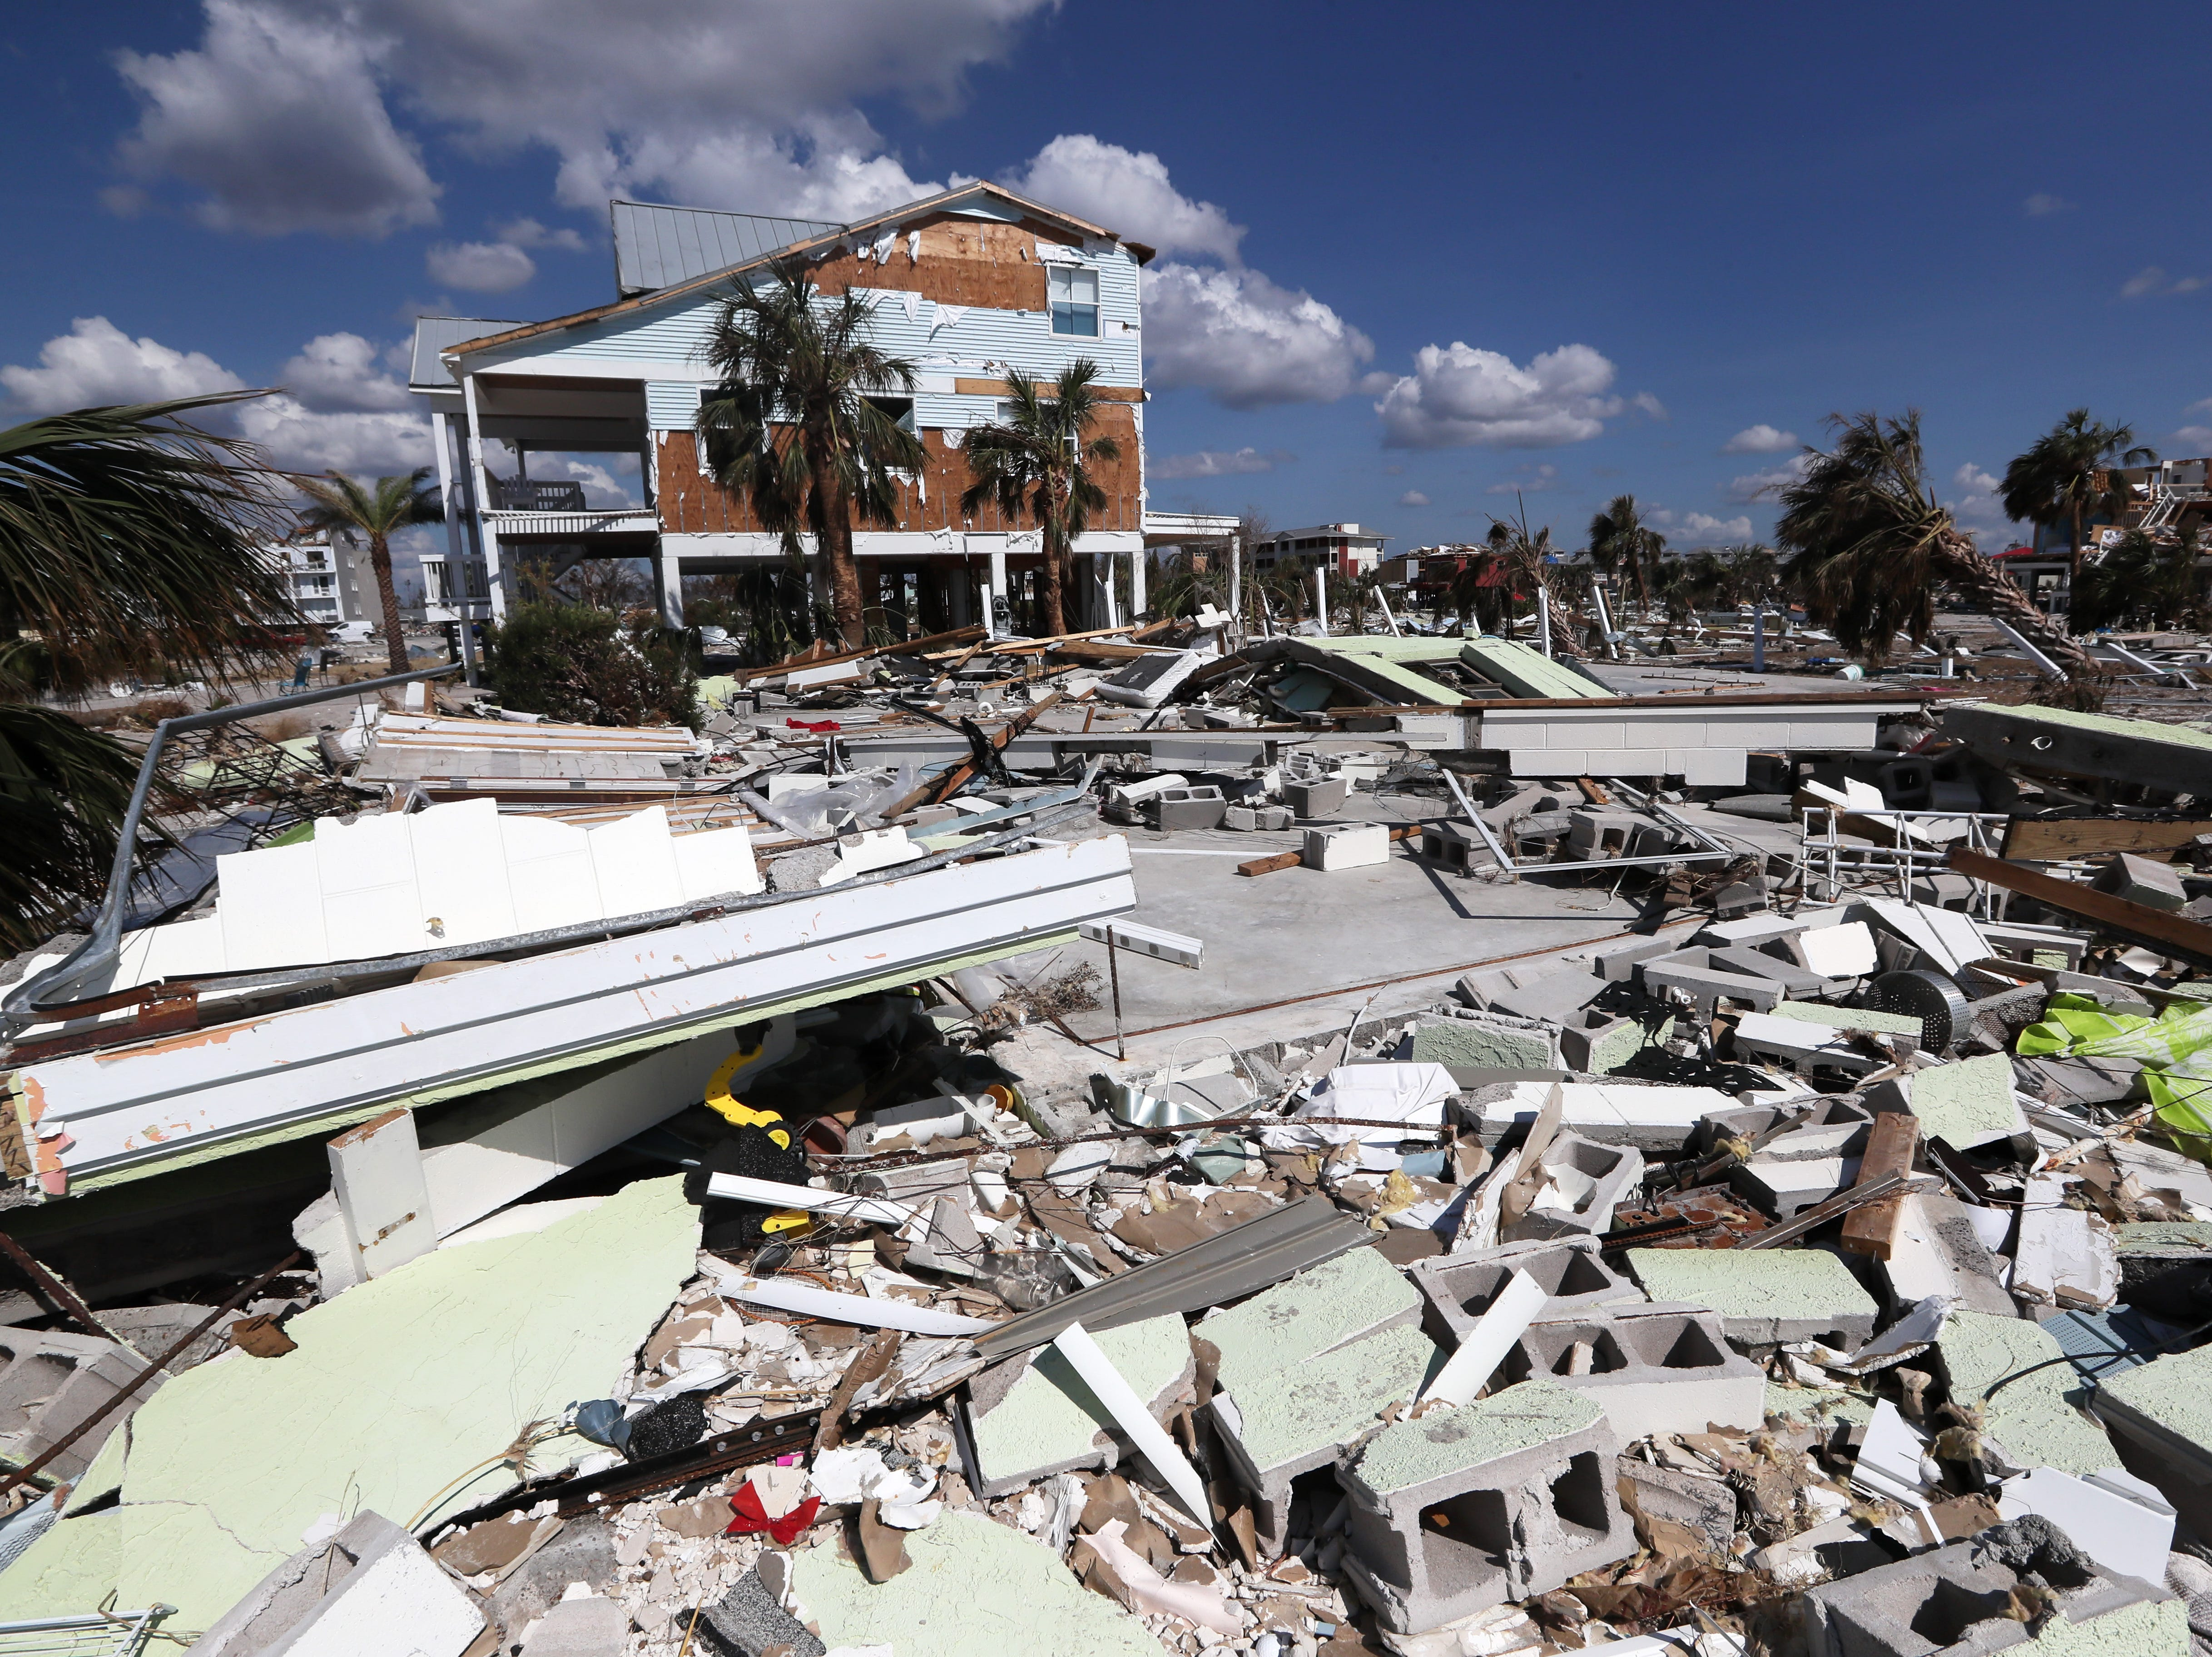 Rubble is all that is left of beach homes along Mexico Beach on Wednesday, Oct. 17, 2018, one week after Hurricane Michael ripped through the coastal Florida town.